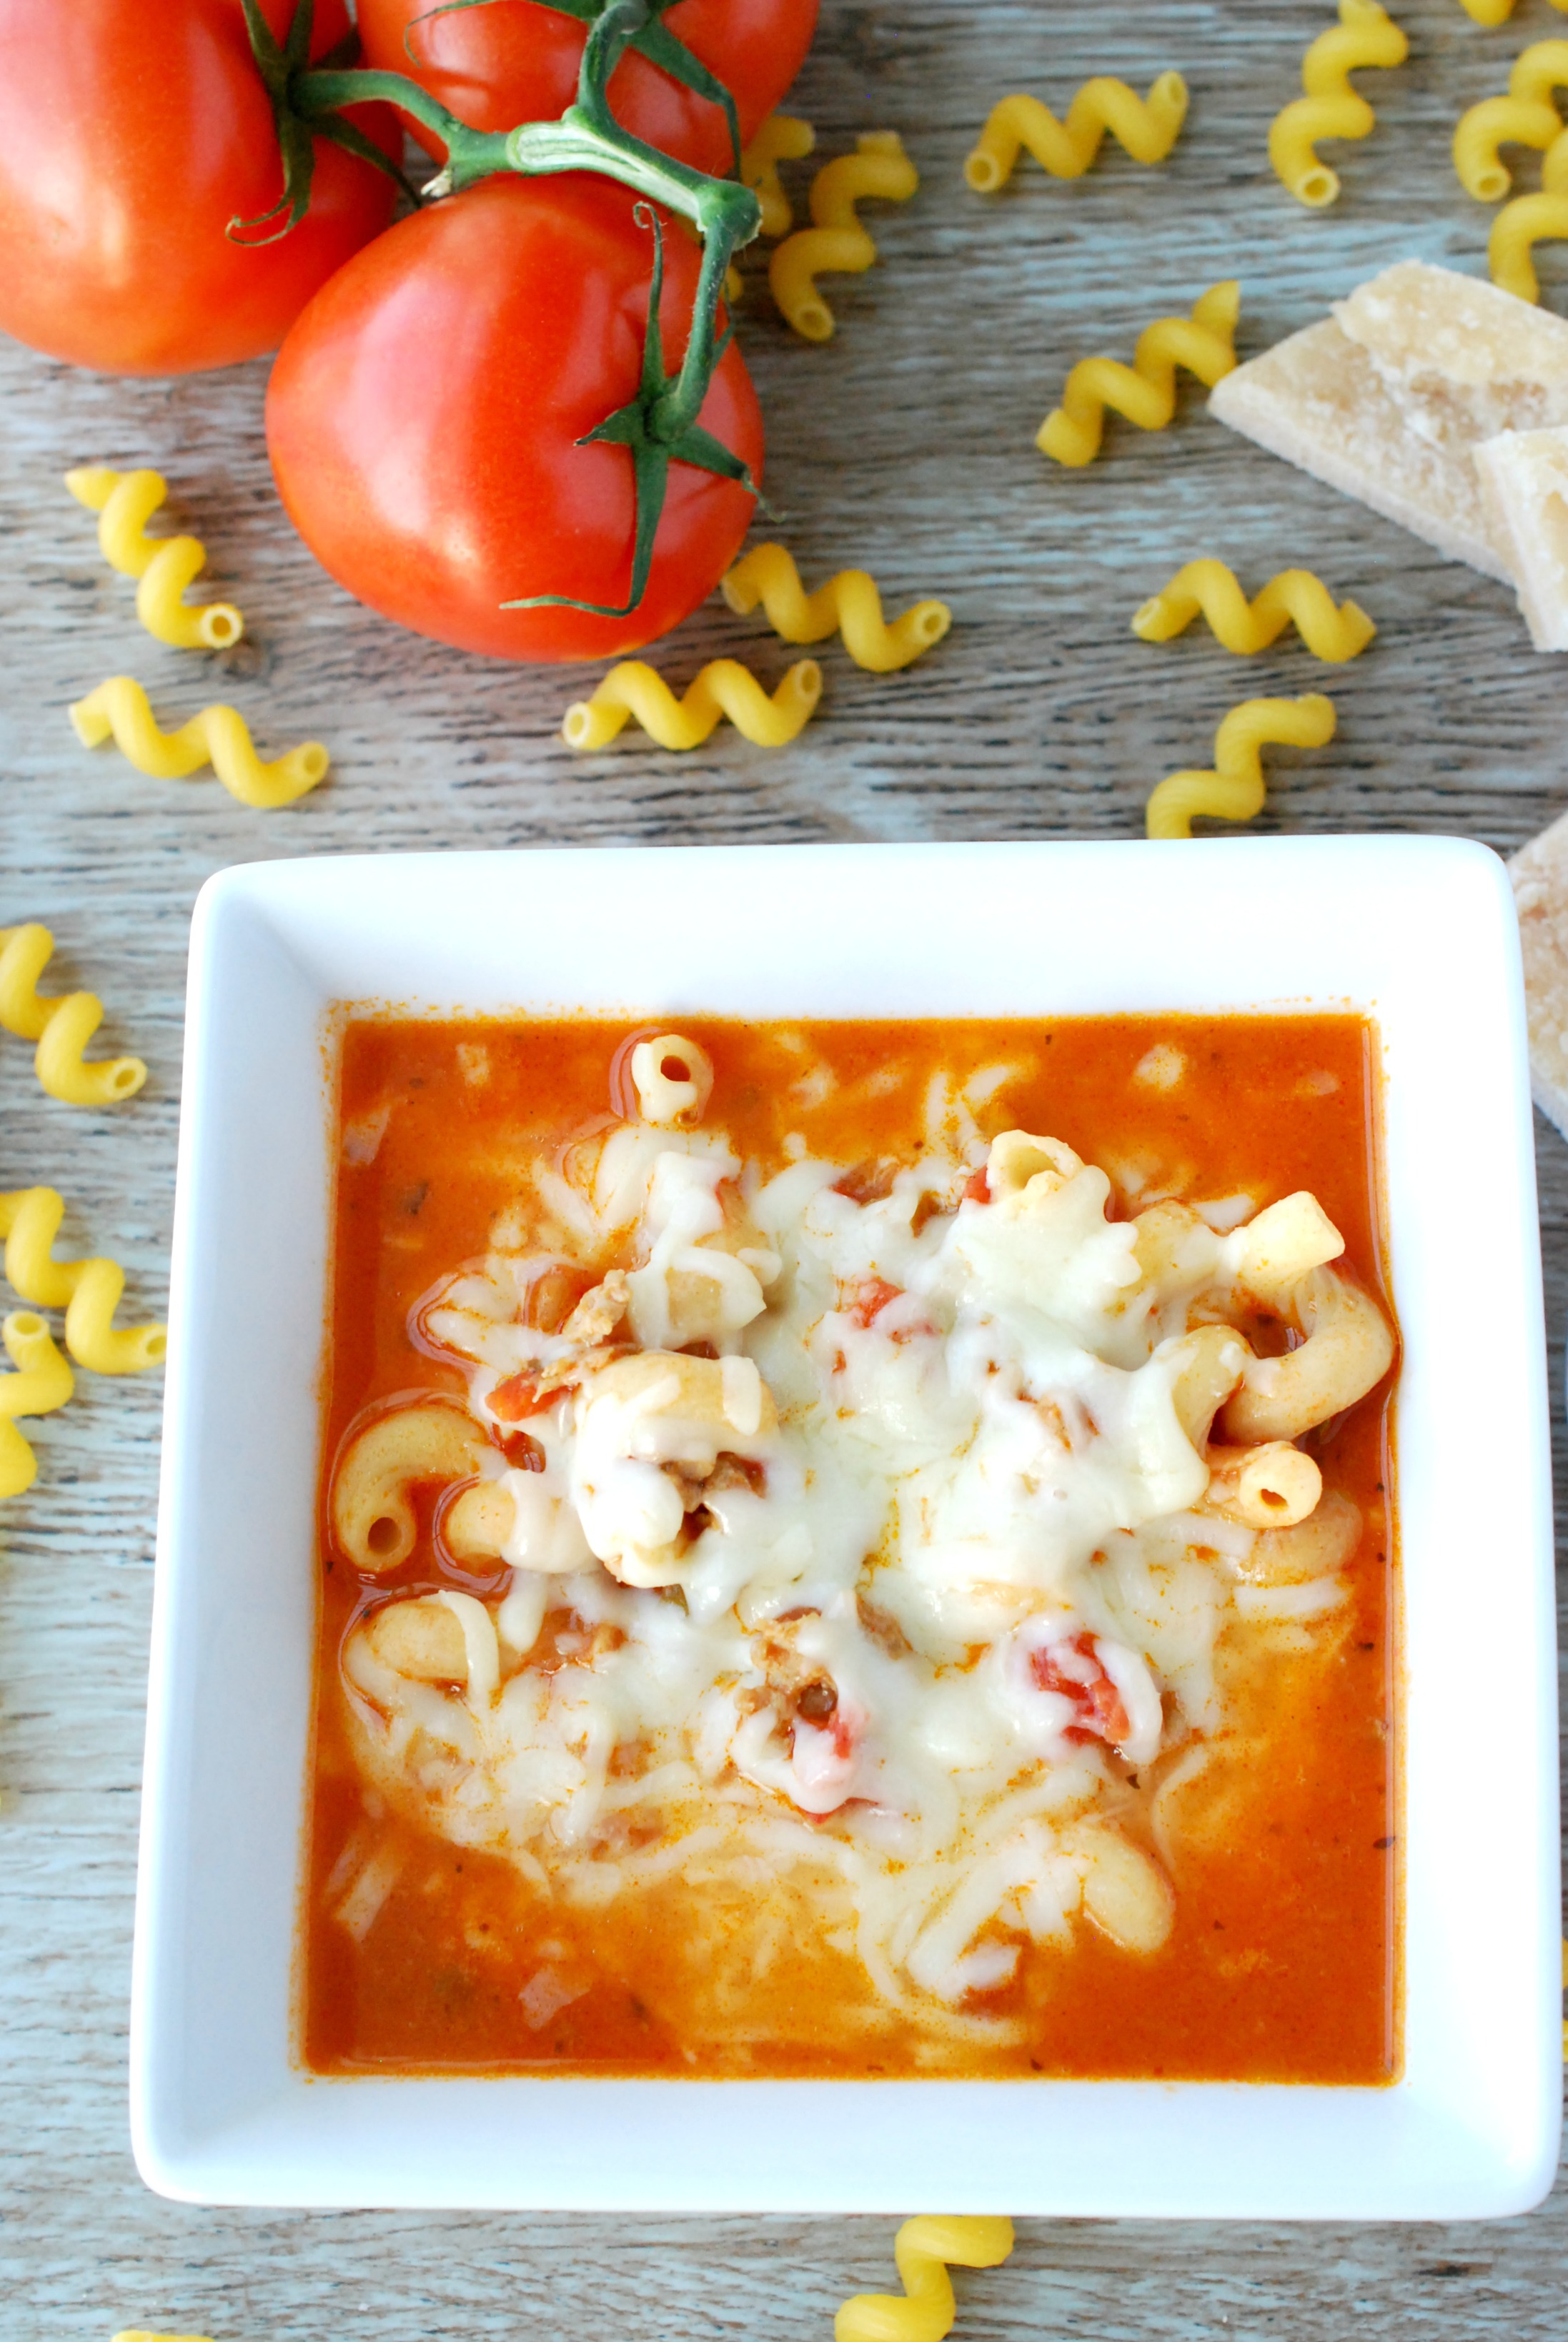 Lasagna soup is a quick, easy, and slightly healthier way to get your lasagna fix!